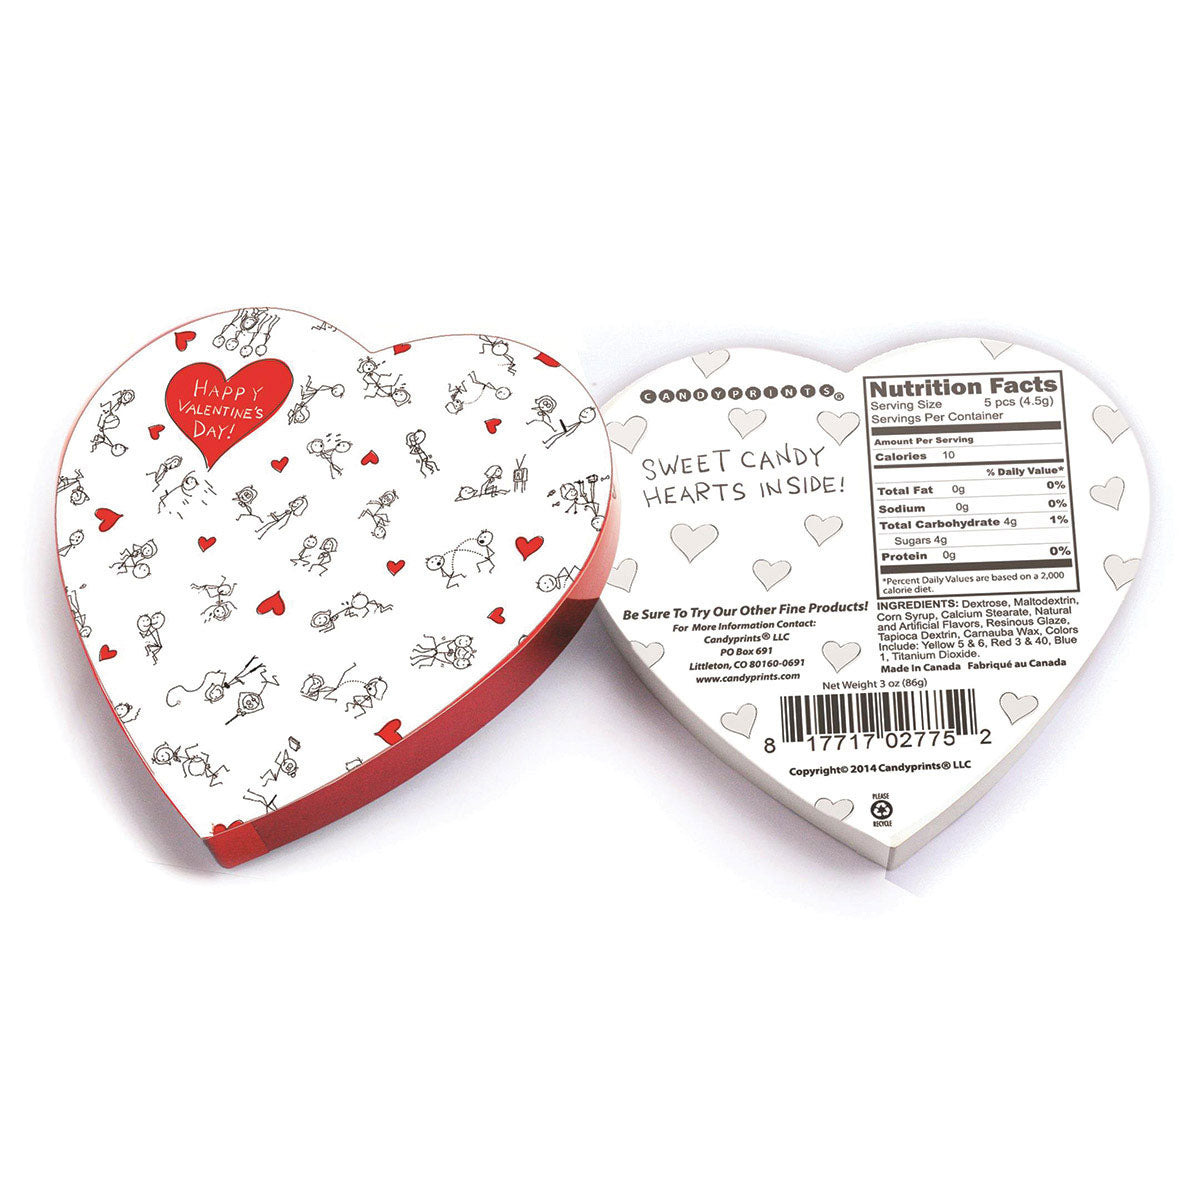 Candyprints Happy Valentines Day Stick Figure Box